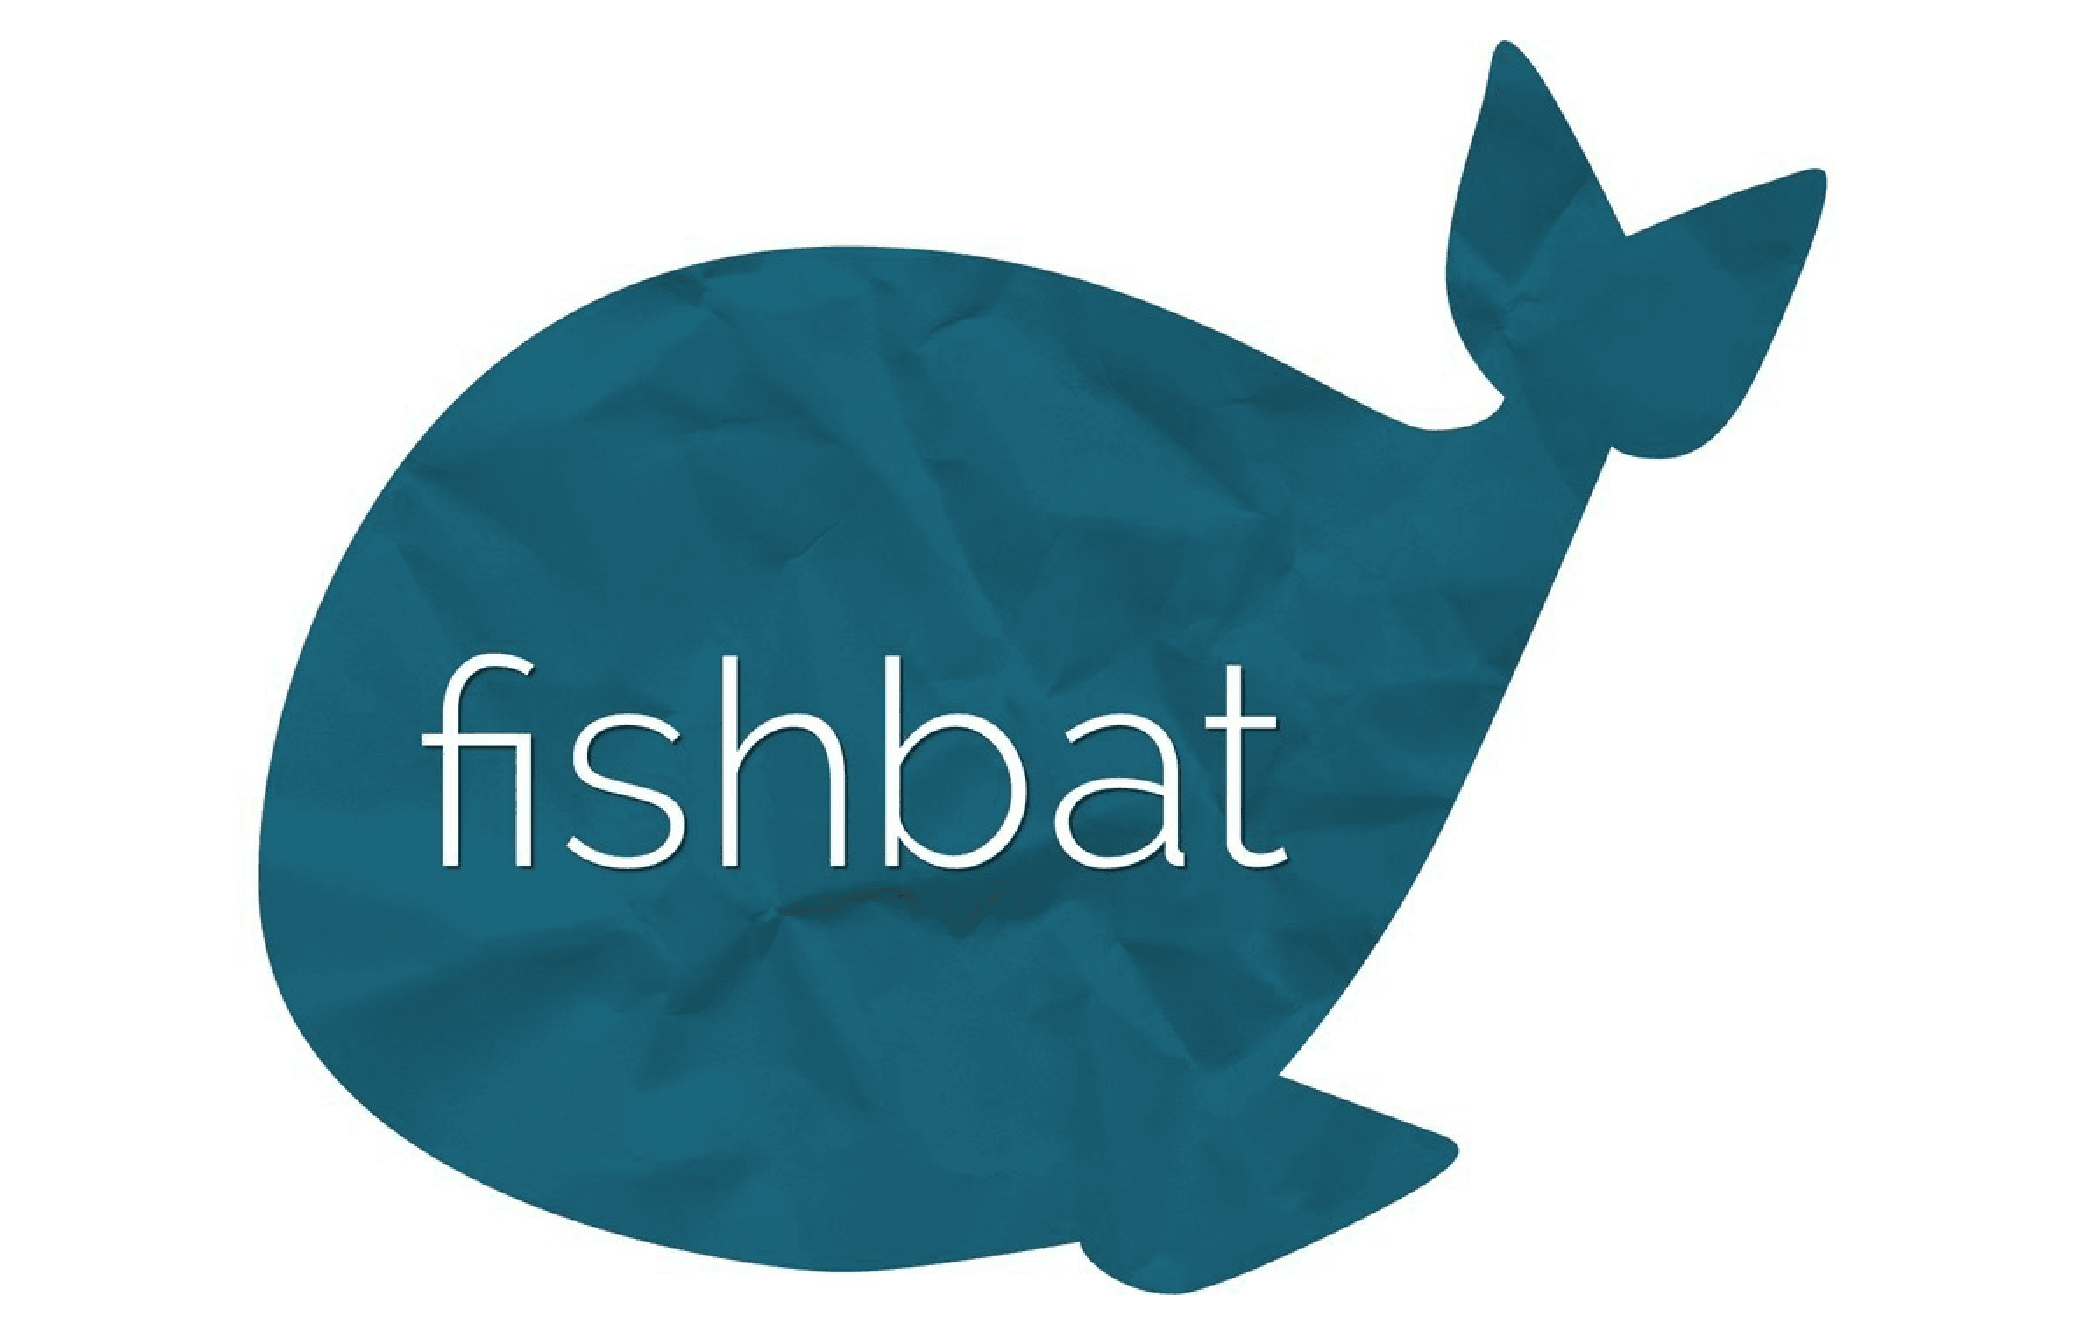 PointofSale Internet Marketing Agency, fishbat, Shares Tips on Creating Instagram Story Highlights to Showcase Your Local Business